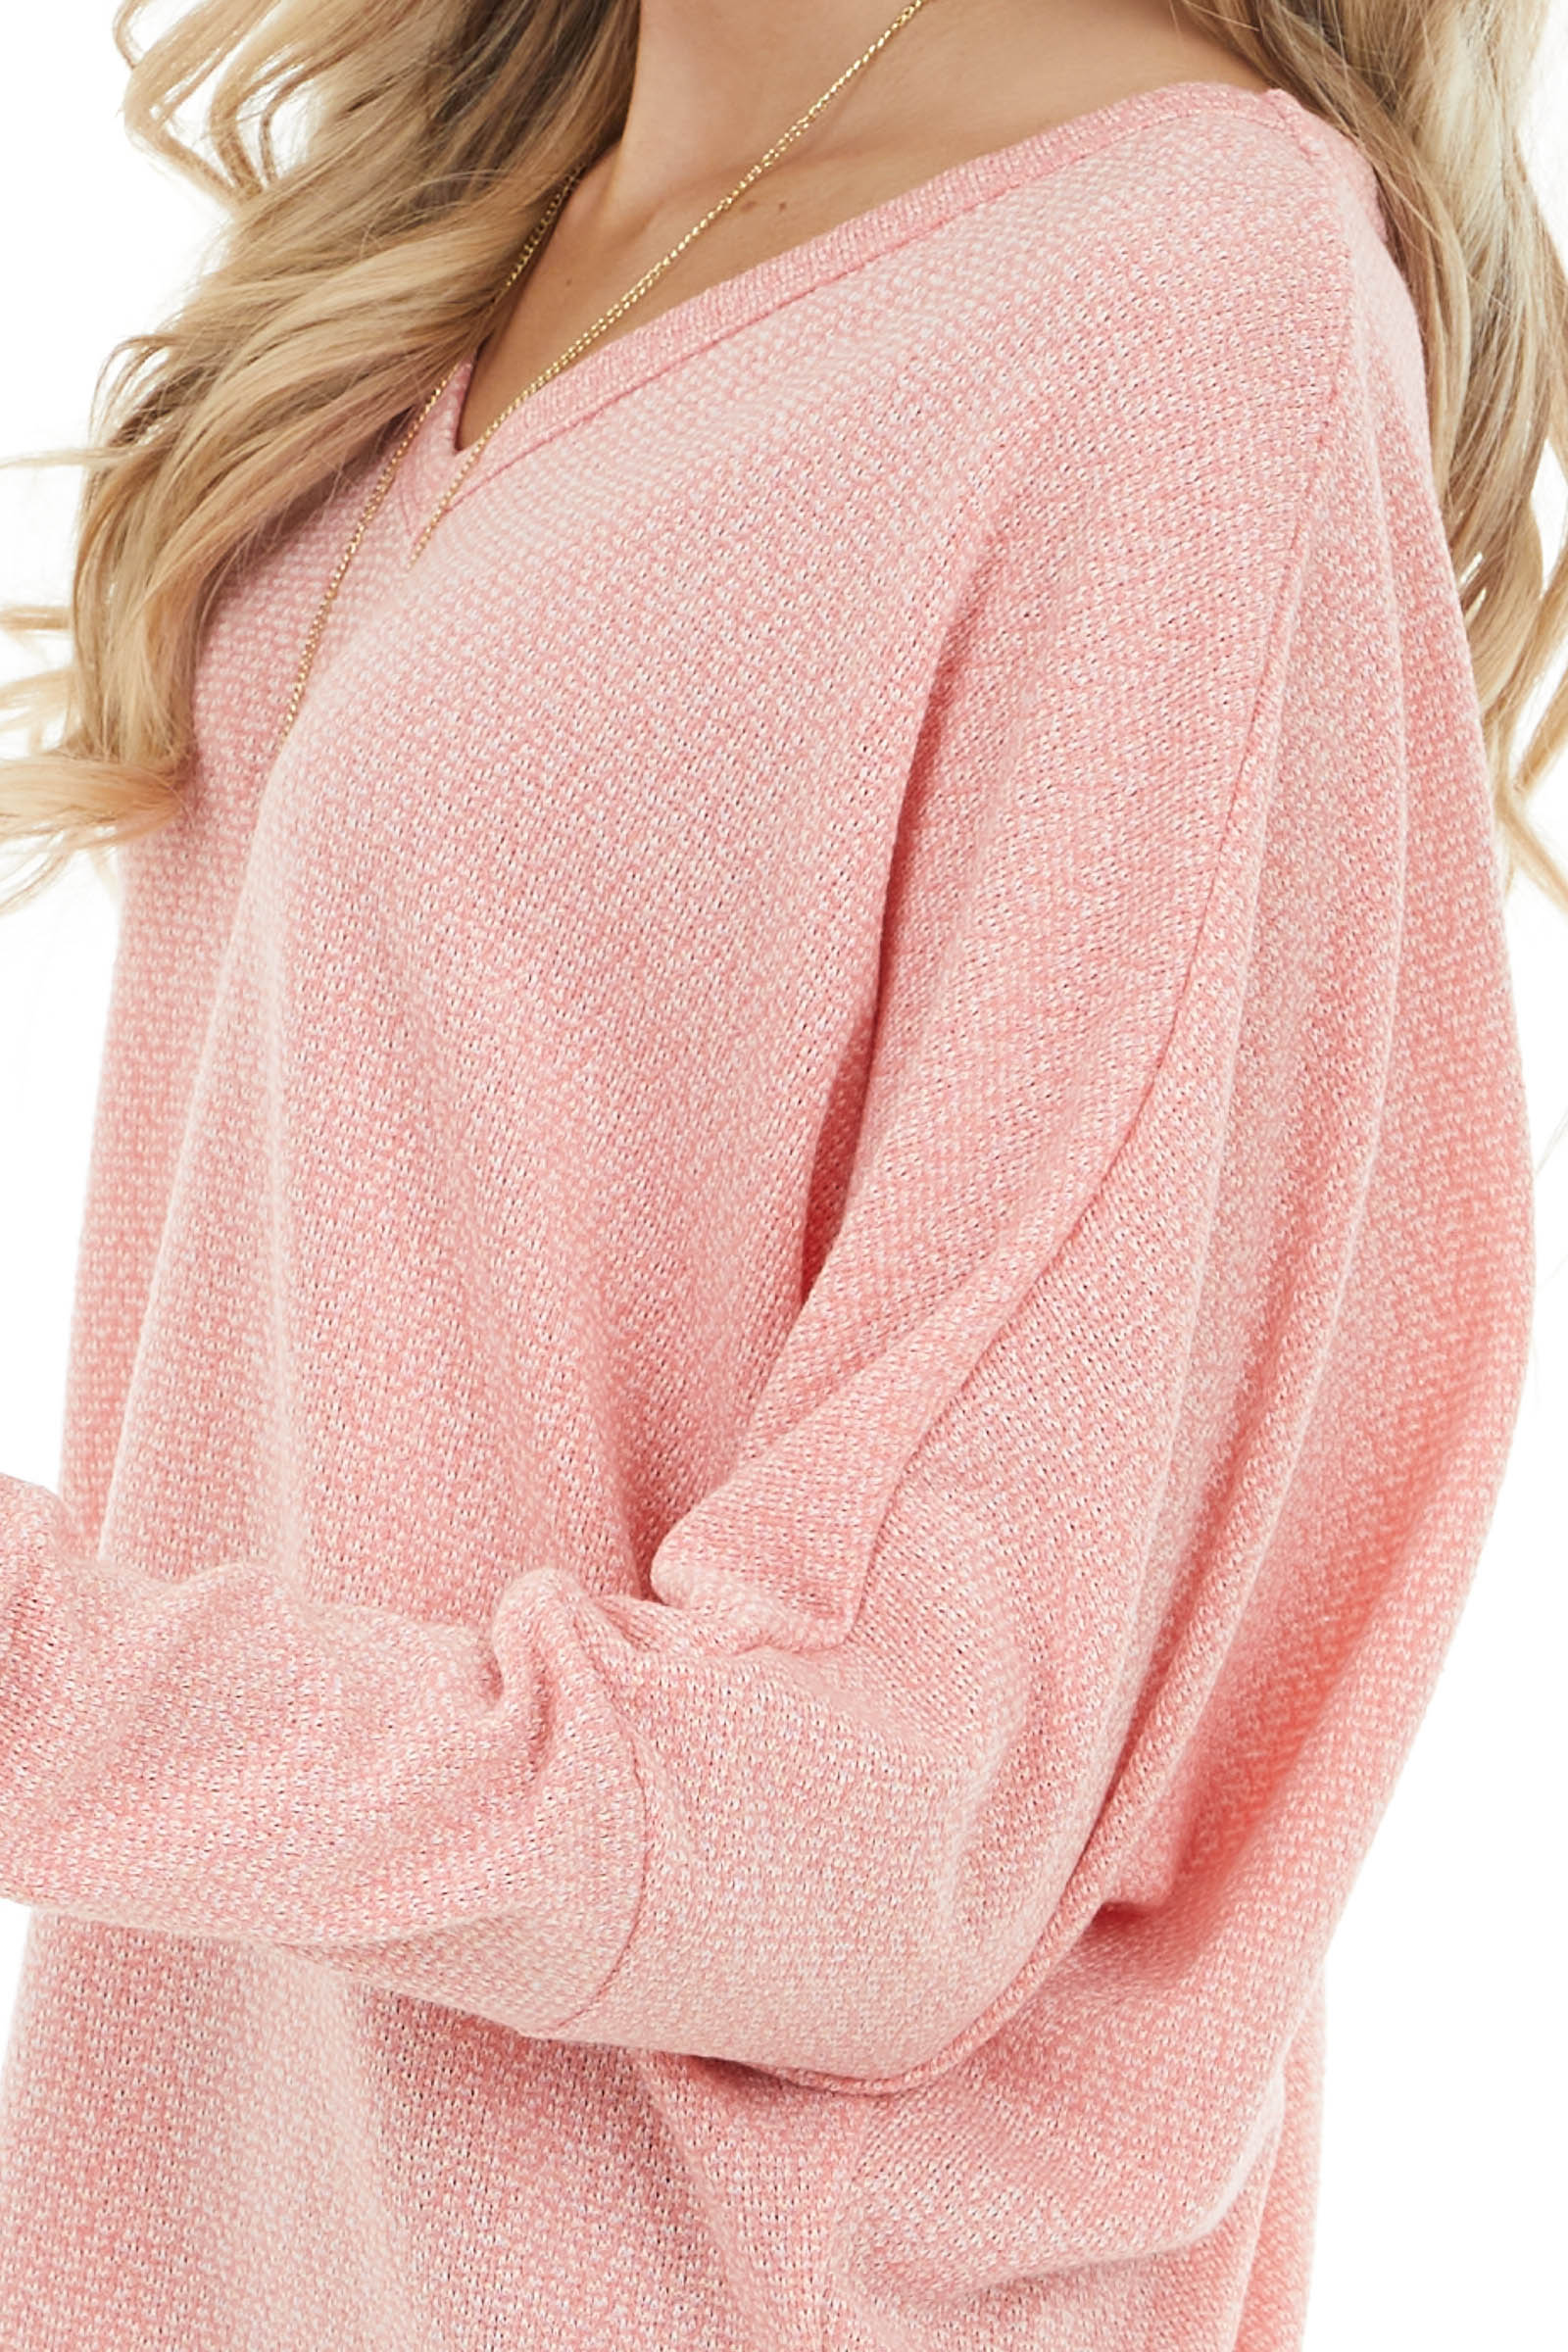 Heathered Coral V Neck Knit Top with Long Dolman Sleeves